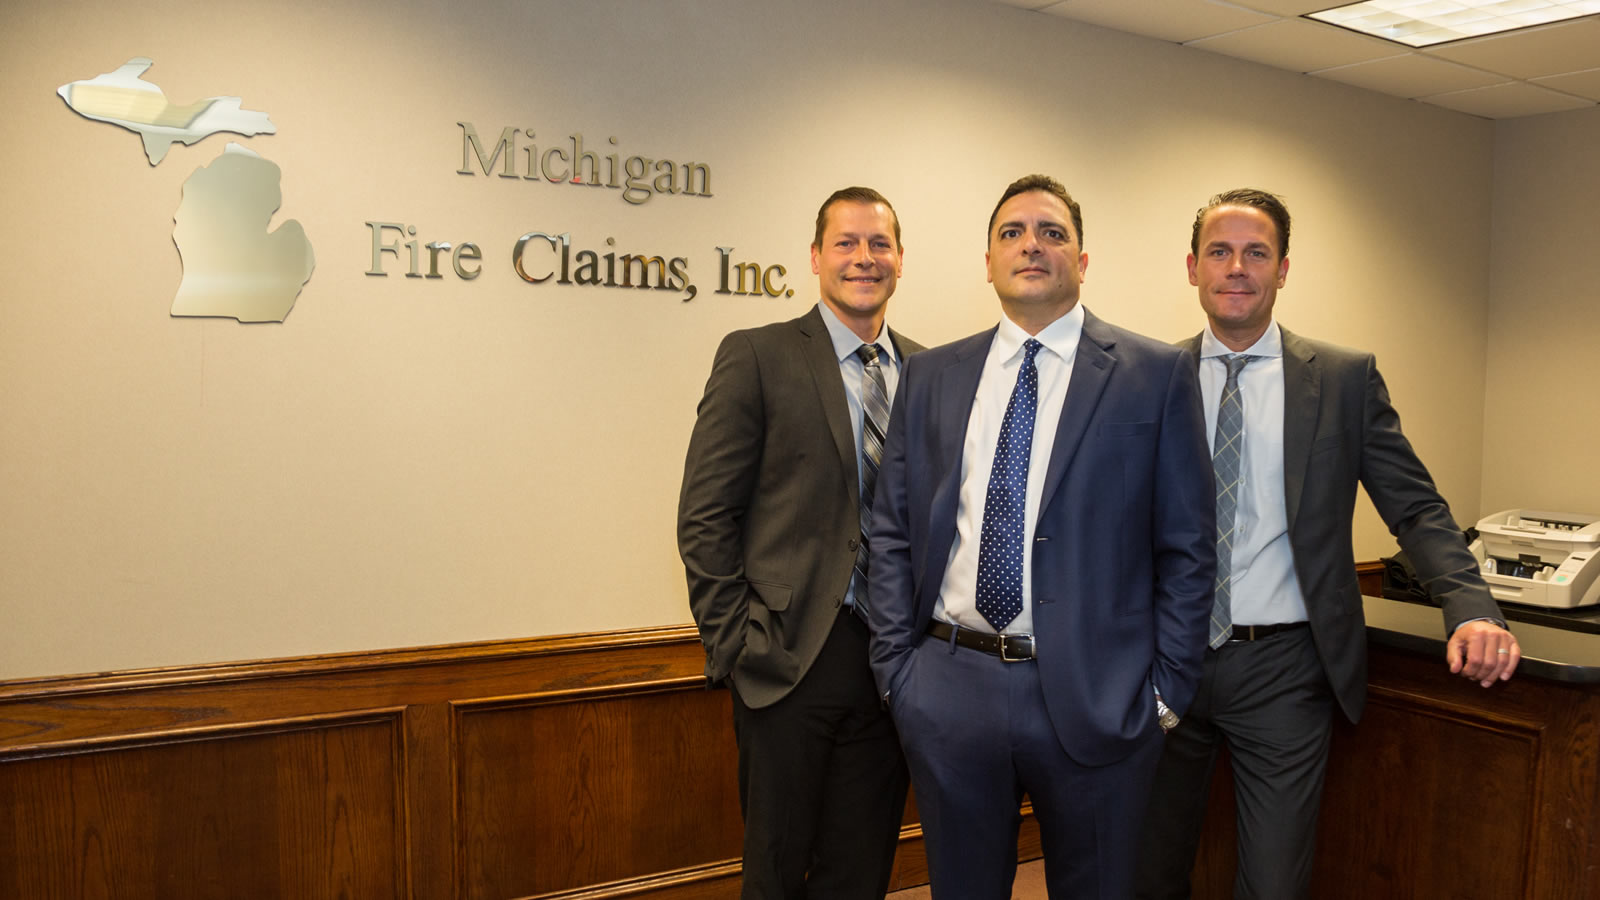 About Michigan Fire Claims, Inc. Public Adjuster